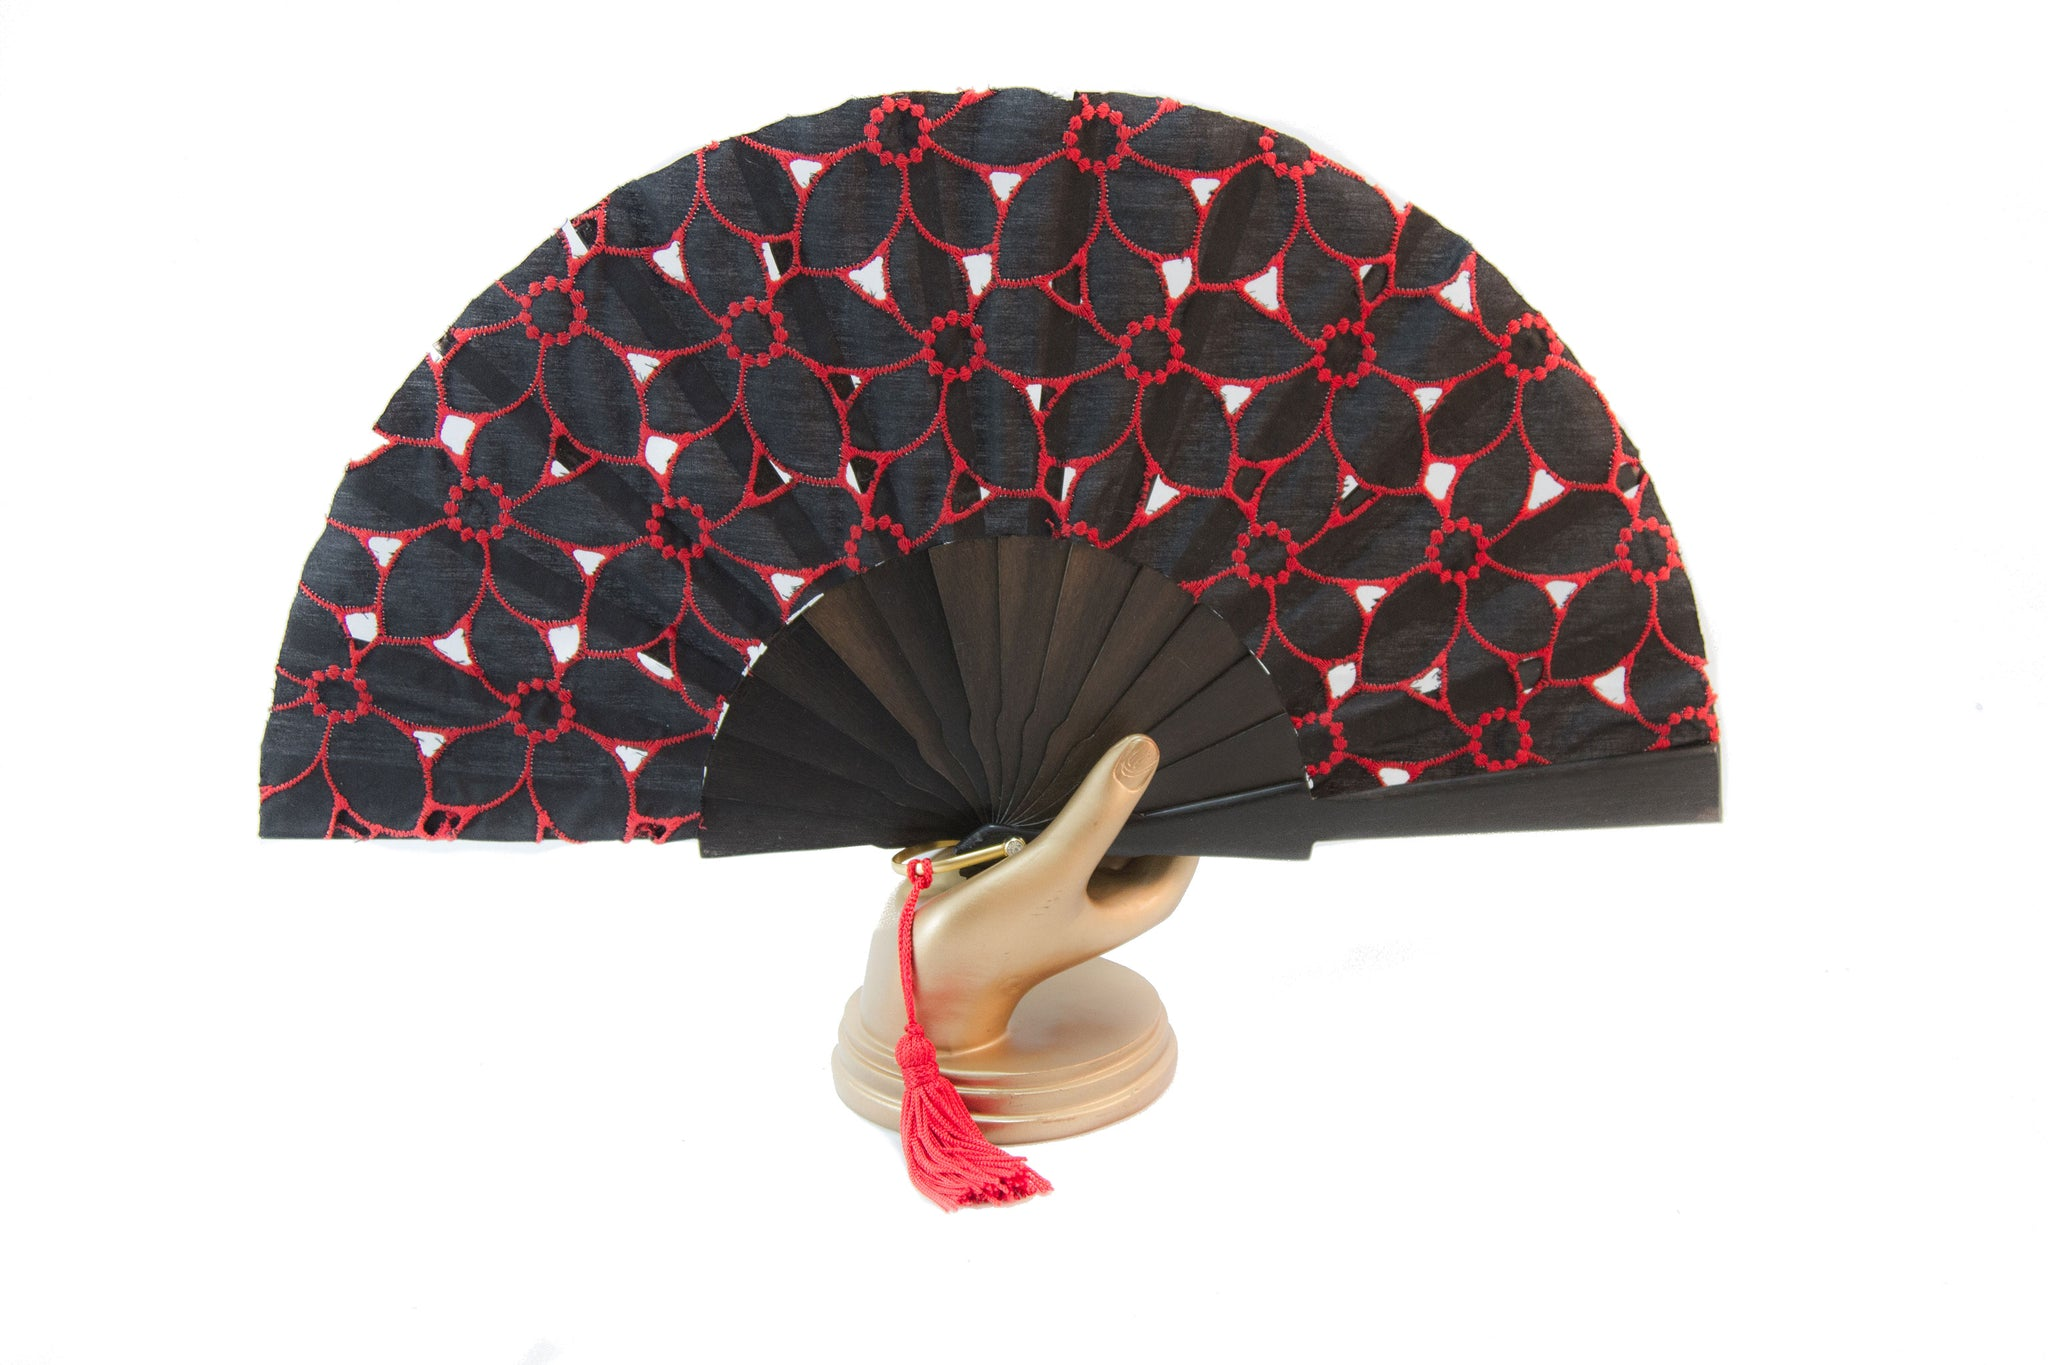 Limoges - Beautiful handmade red and black cotton open work fan